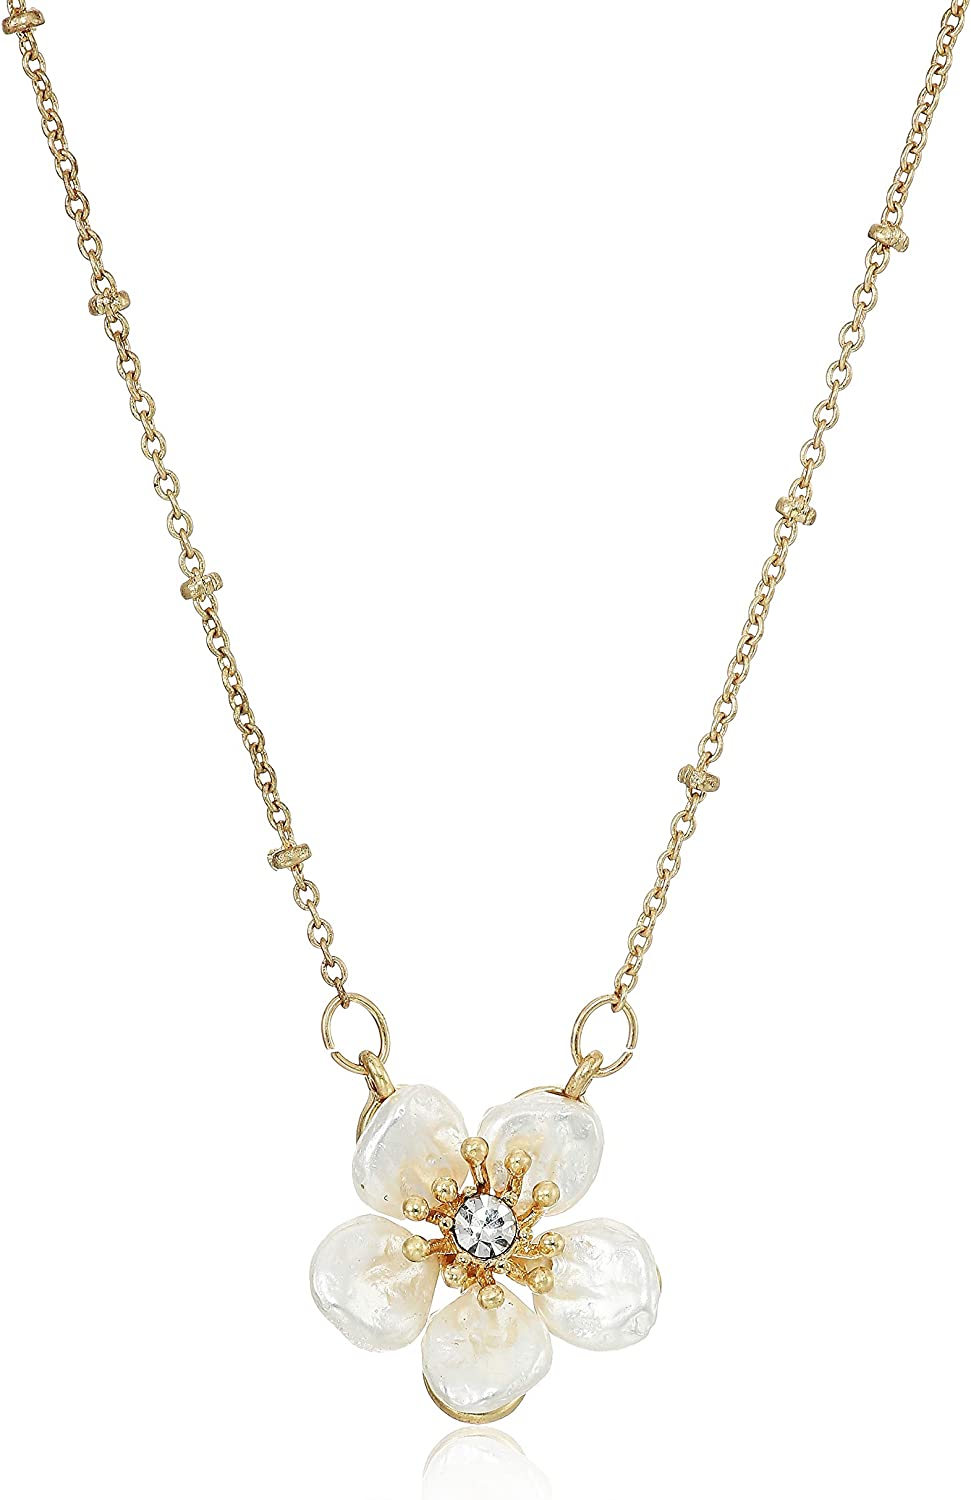 Lonna & Lilly Women's Necklace 16 Inch Flower Pendant - Worn Gold Tone/White/Crystal, One Size